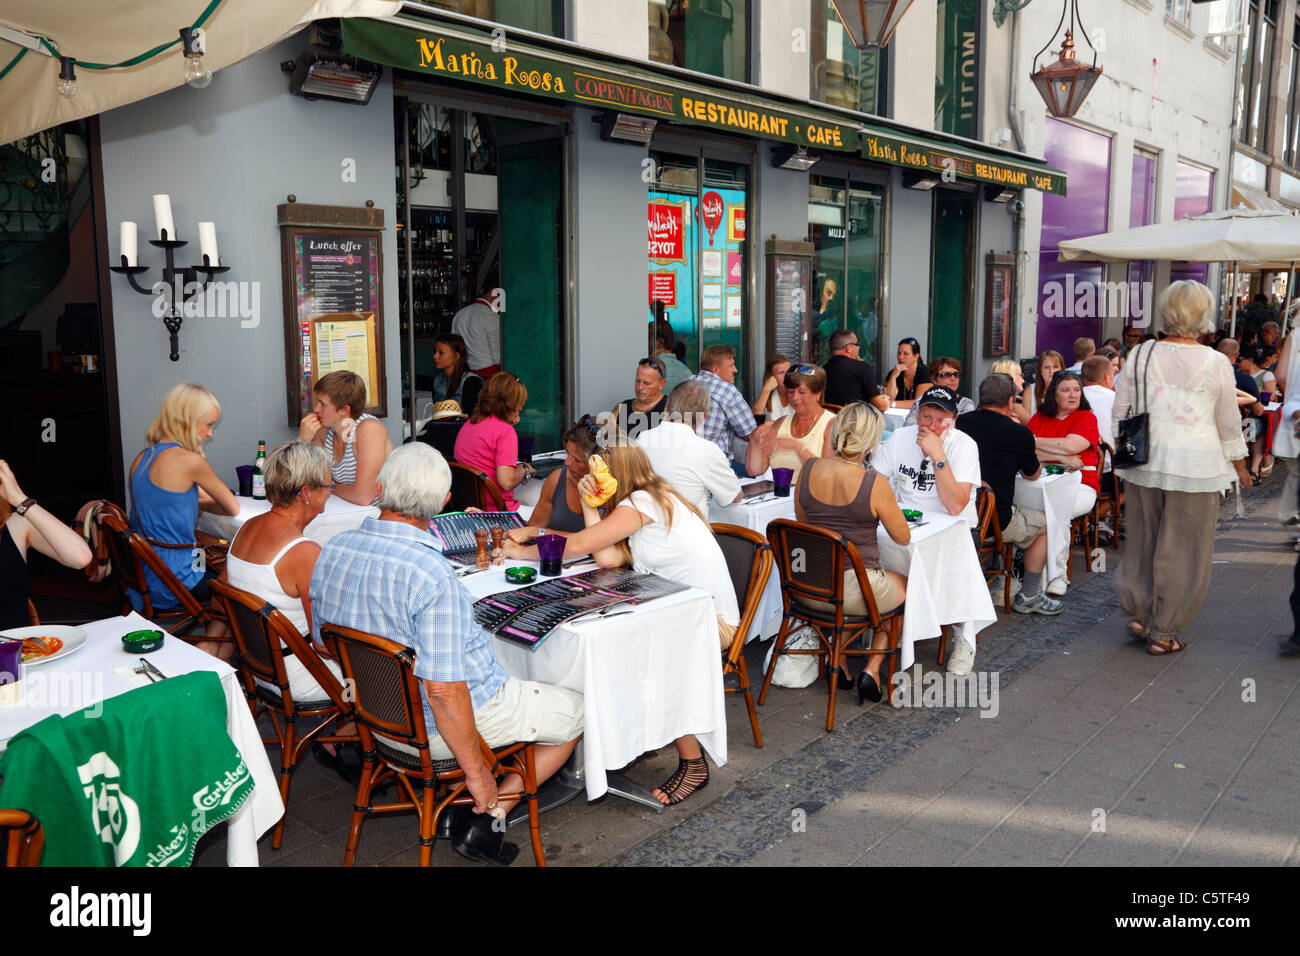 The cafe and restaurant Mama Rosa on Strøget in Copenhagen, Denmark, on a warm and busy summer day in the tourist - Stock Image